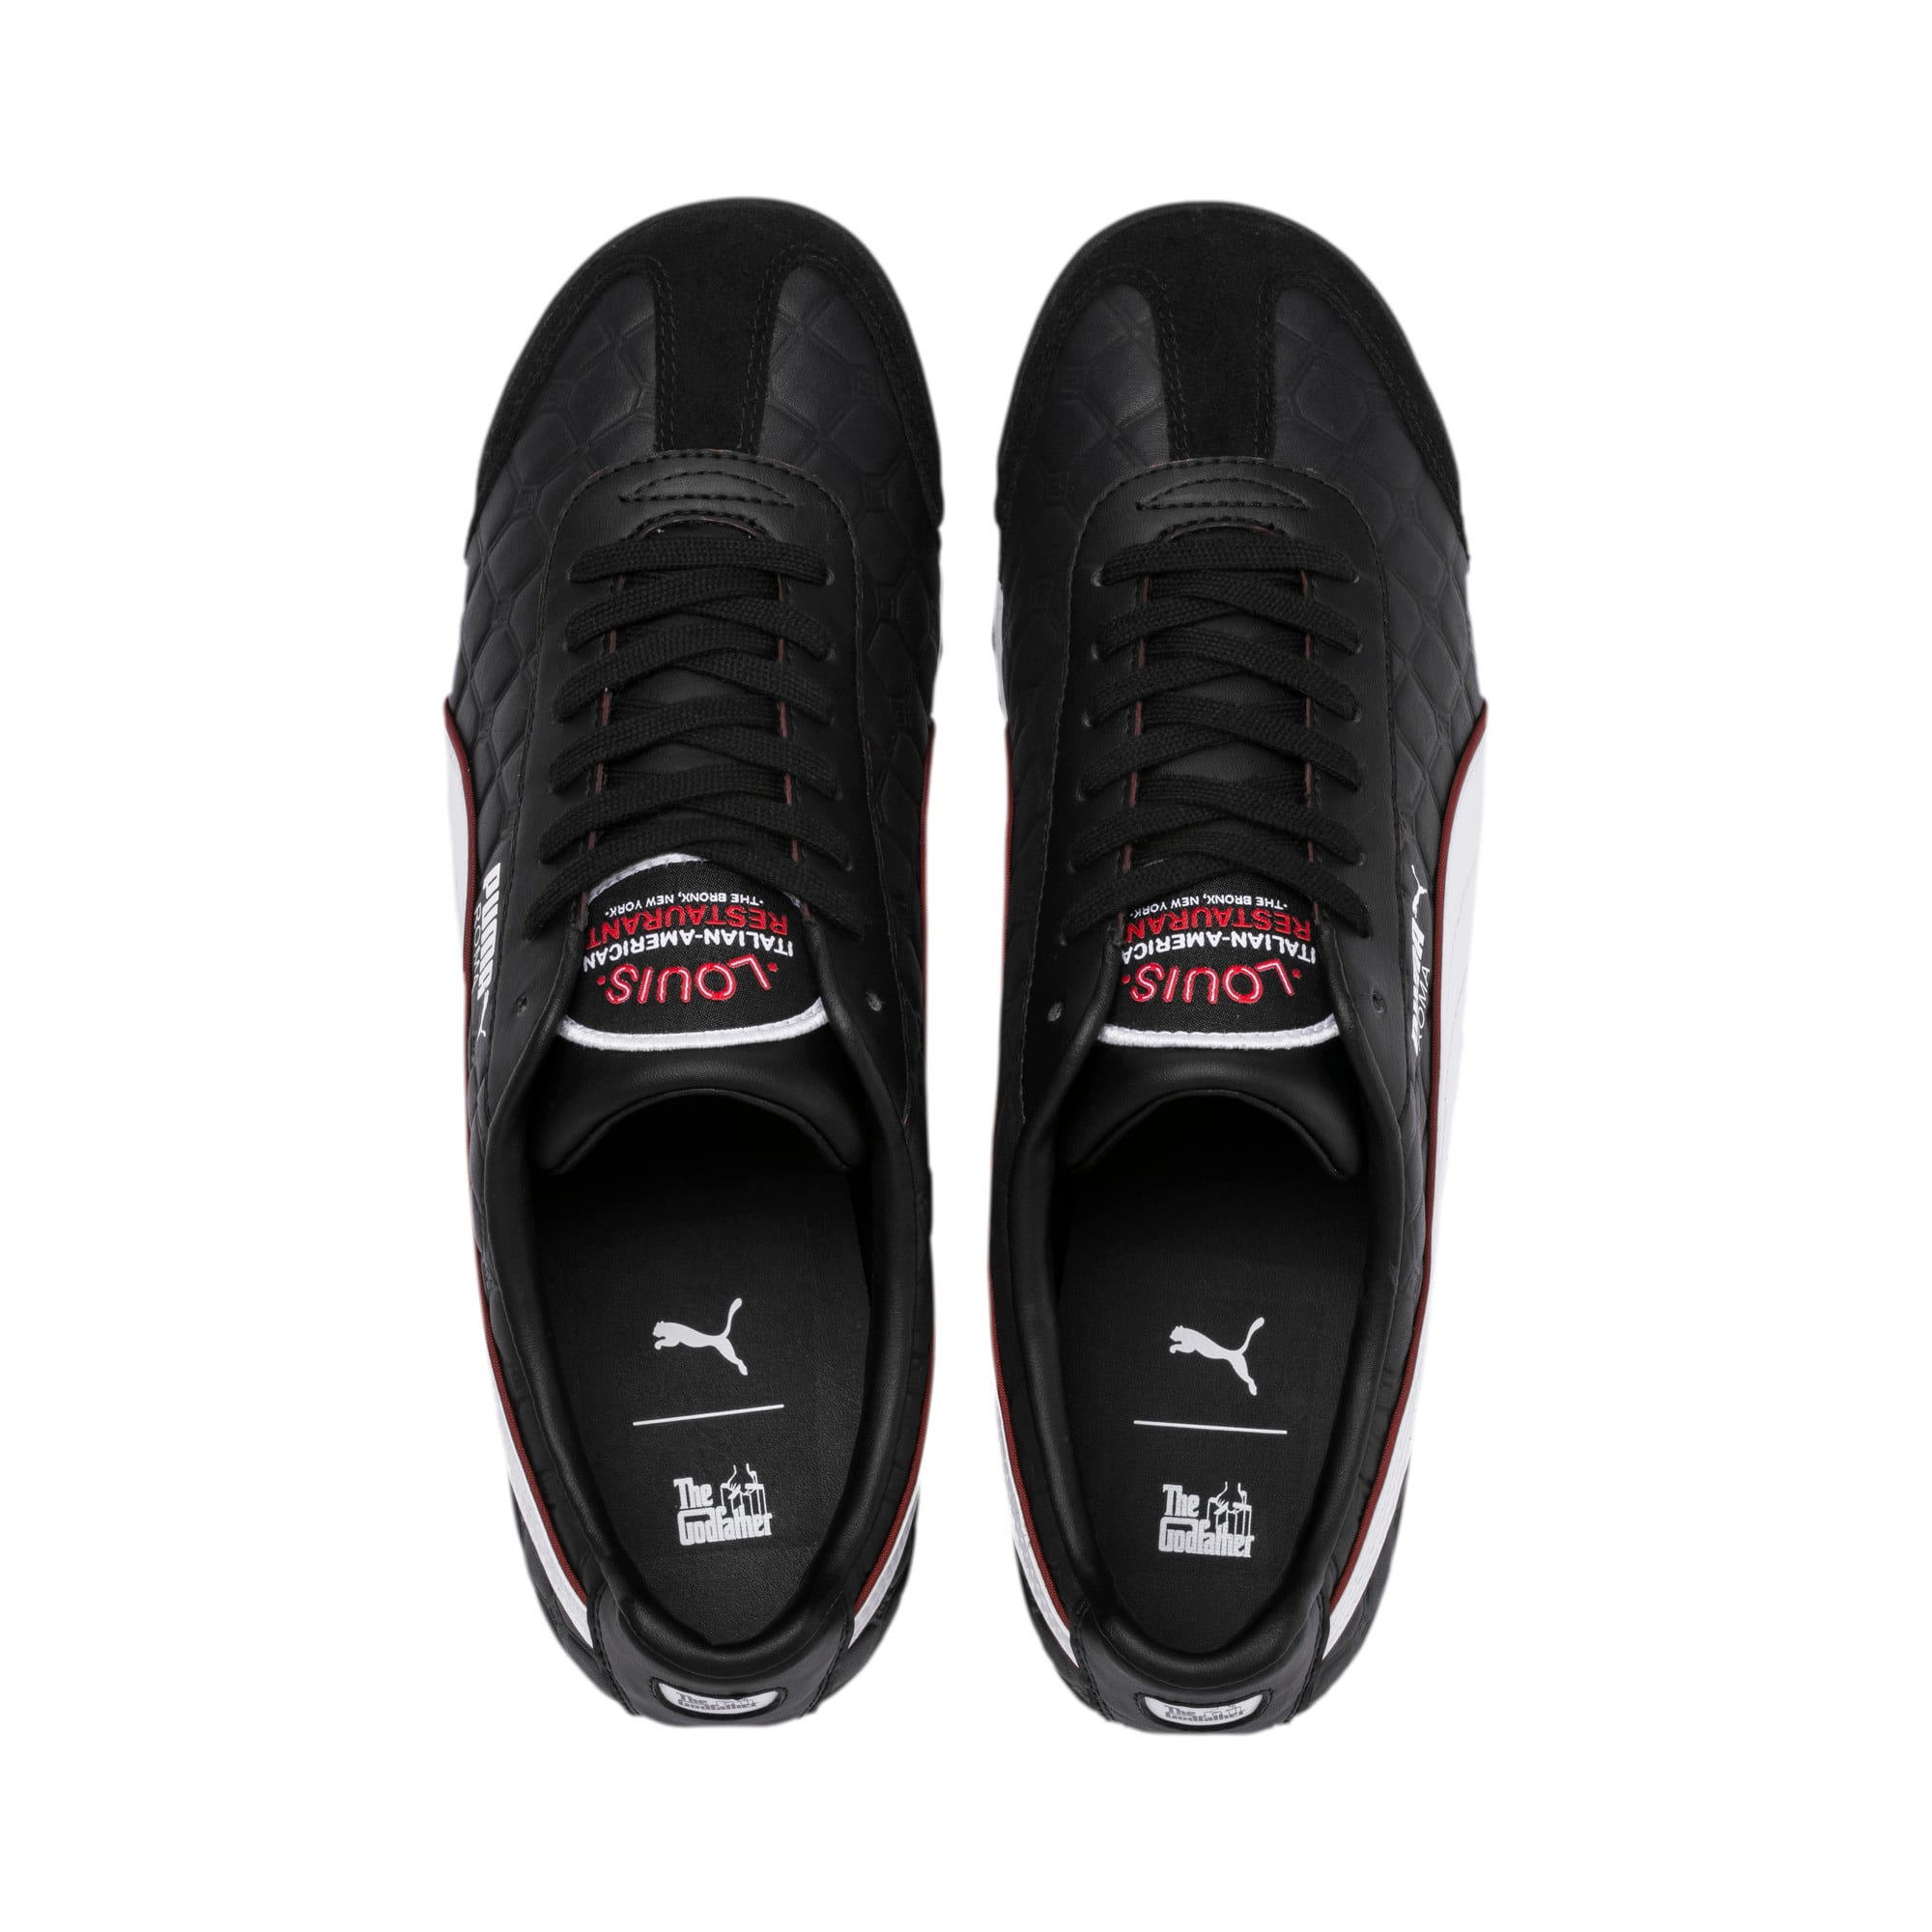 Thumbnail 6 of Roma x The Godfather LOUIS Herren Sneaker, Puma Black-Fired Brick, medium